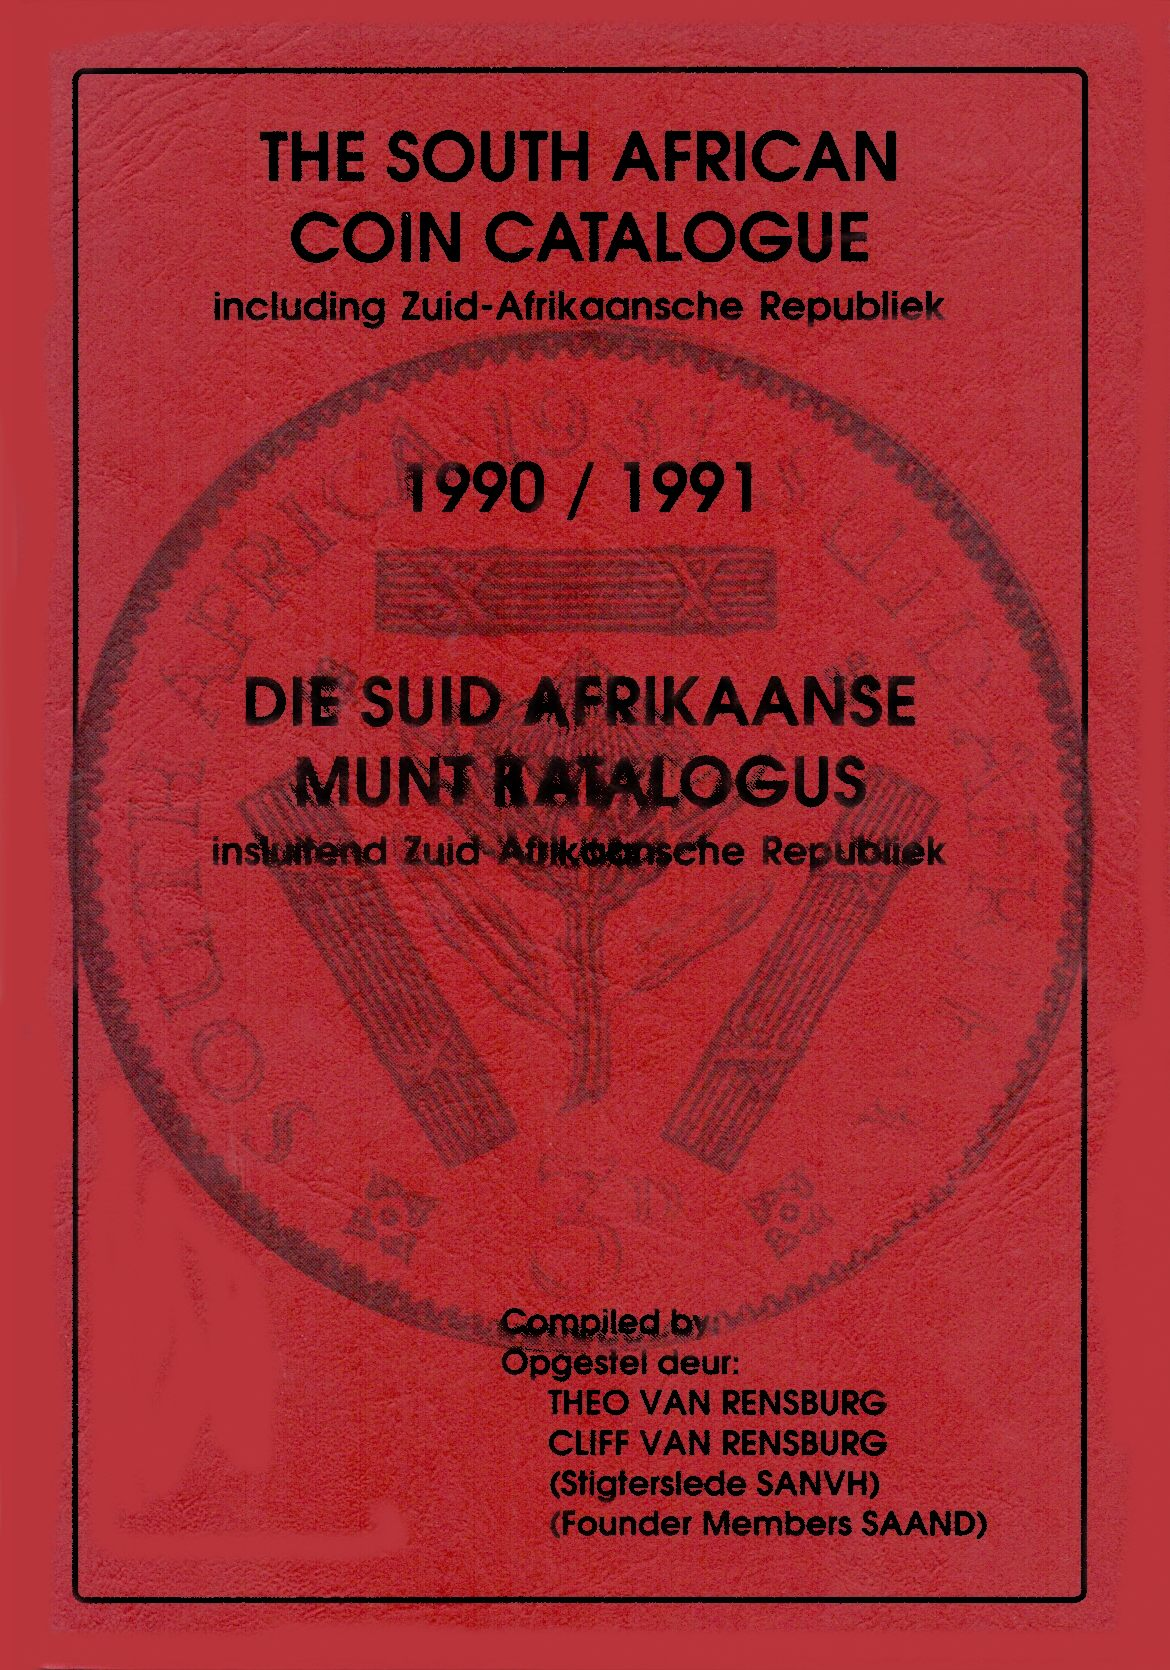 Randburg Coin Catalogue 1990 to 1991